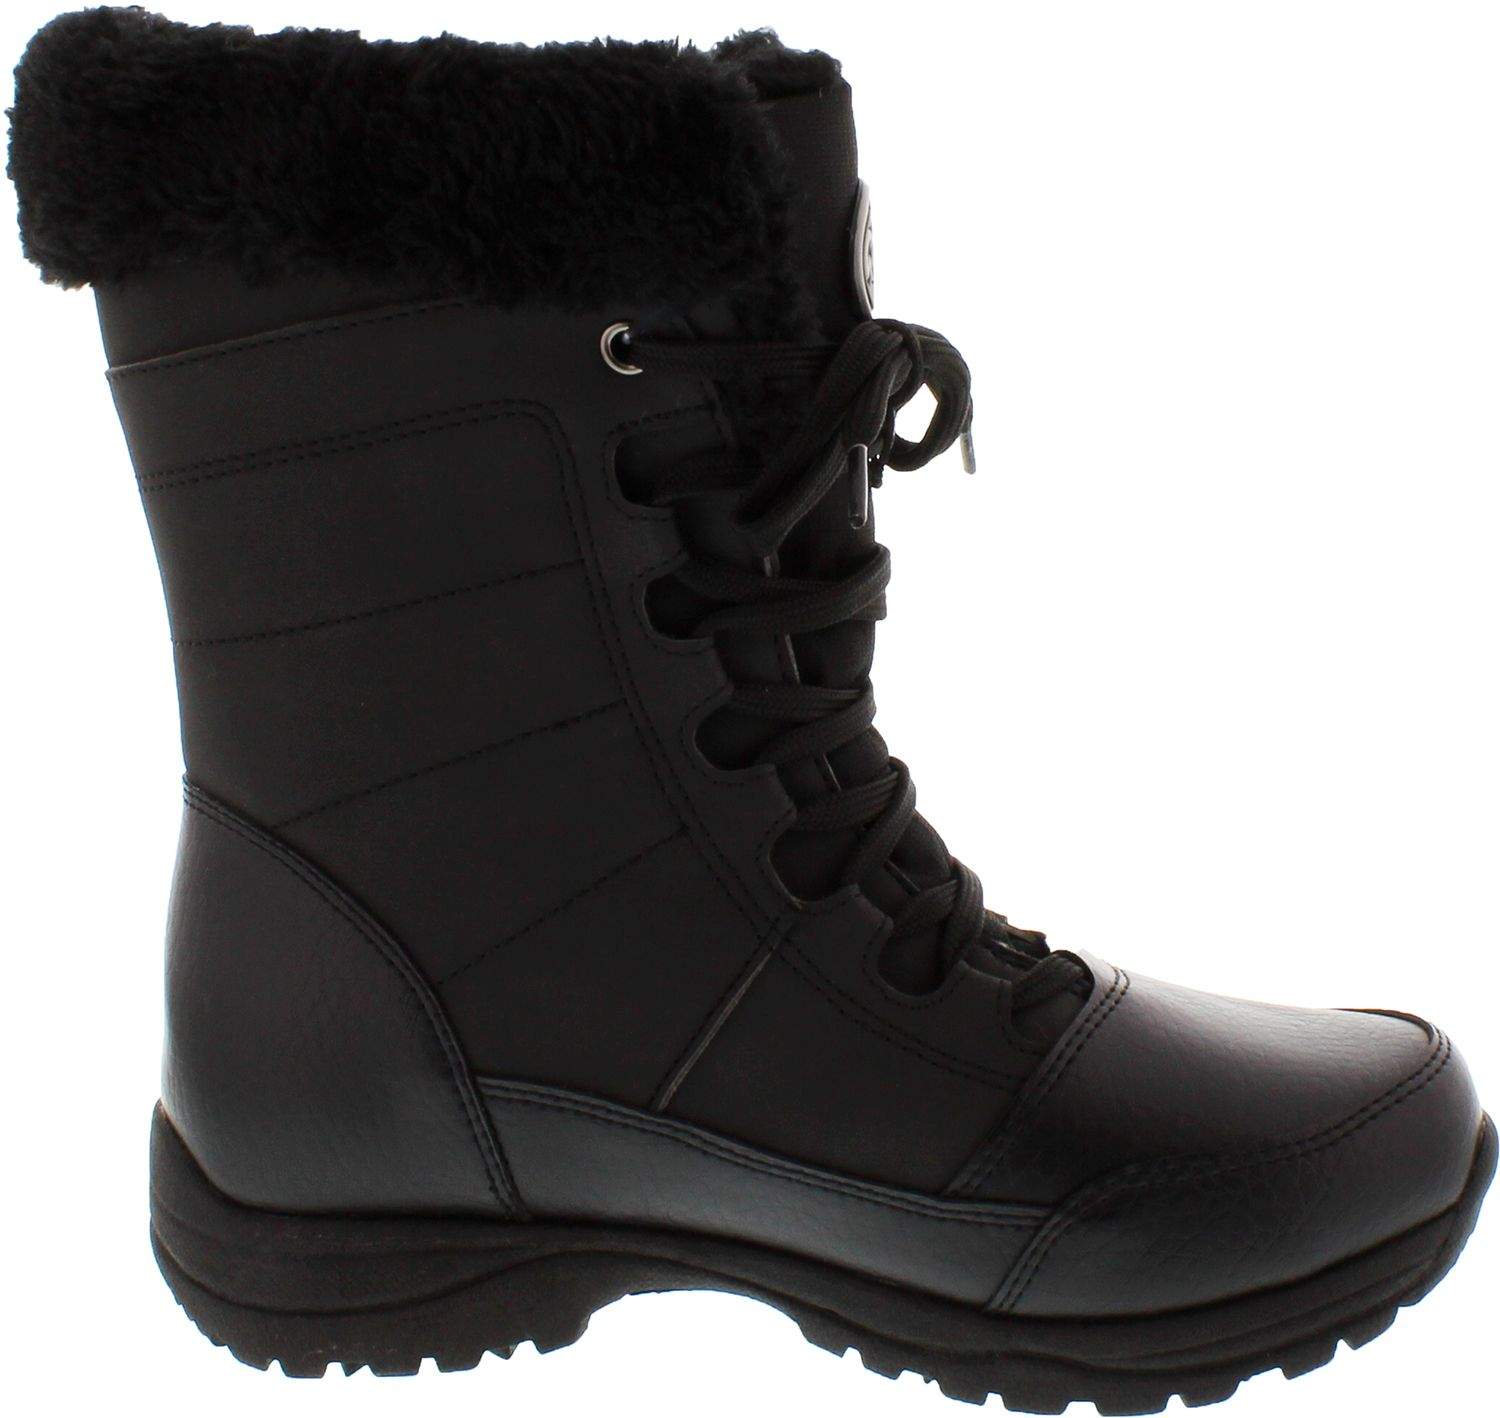 Quest Women's Glacier Winter Boots| DICK'S Sporting Goods